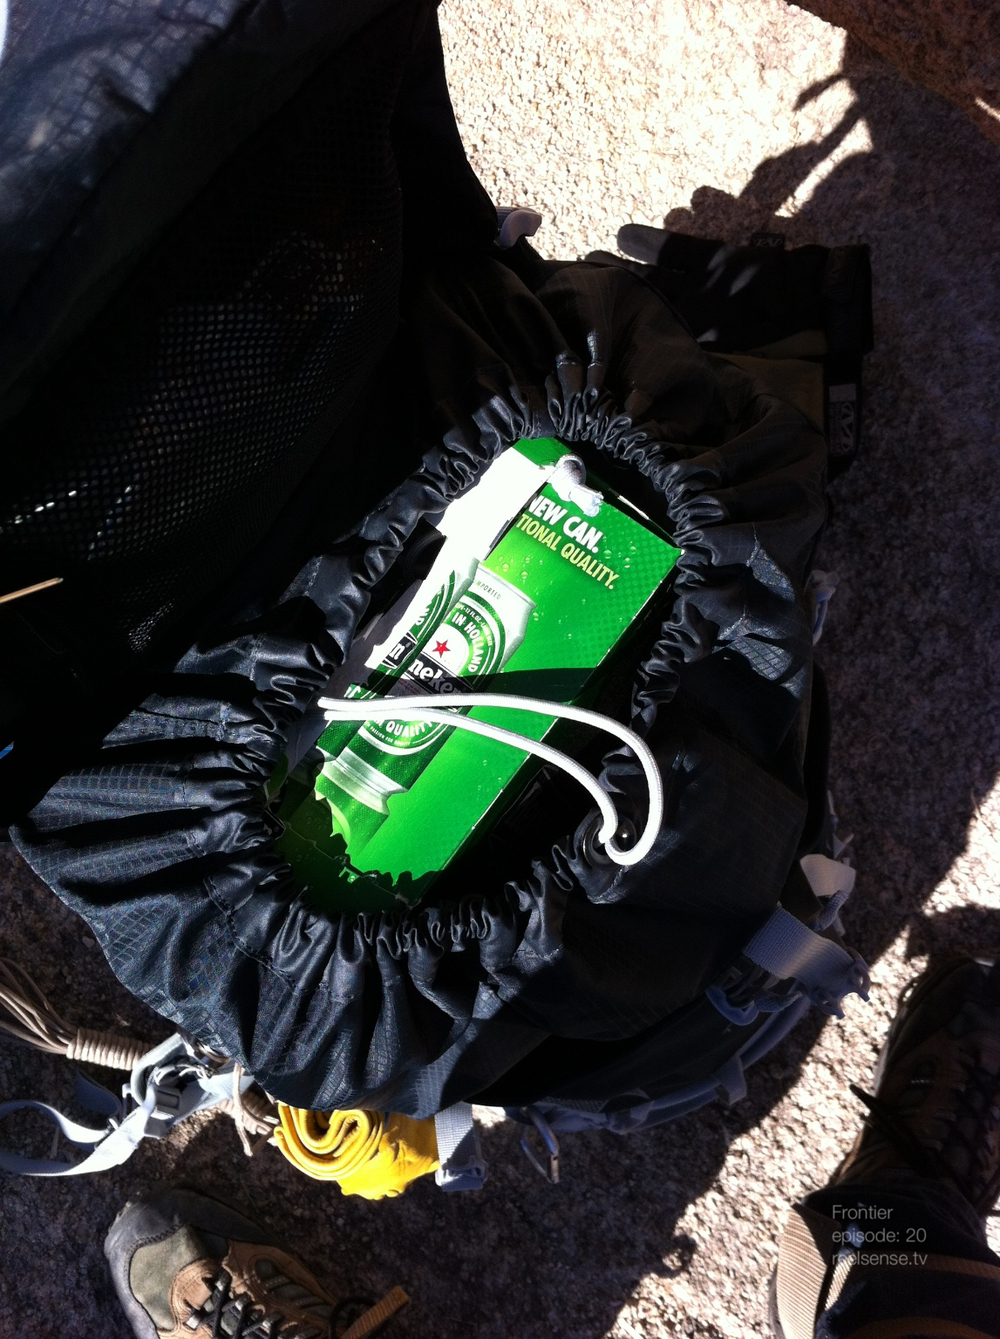 Joshua Tree - 12 pack of Heineken in backpack